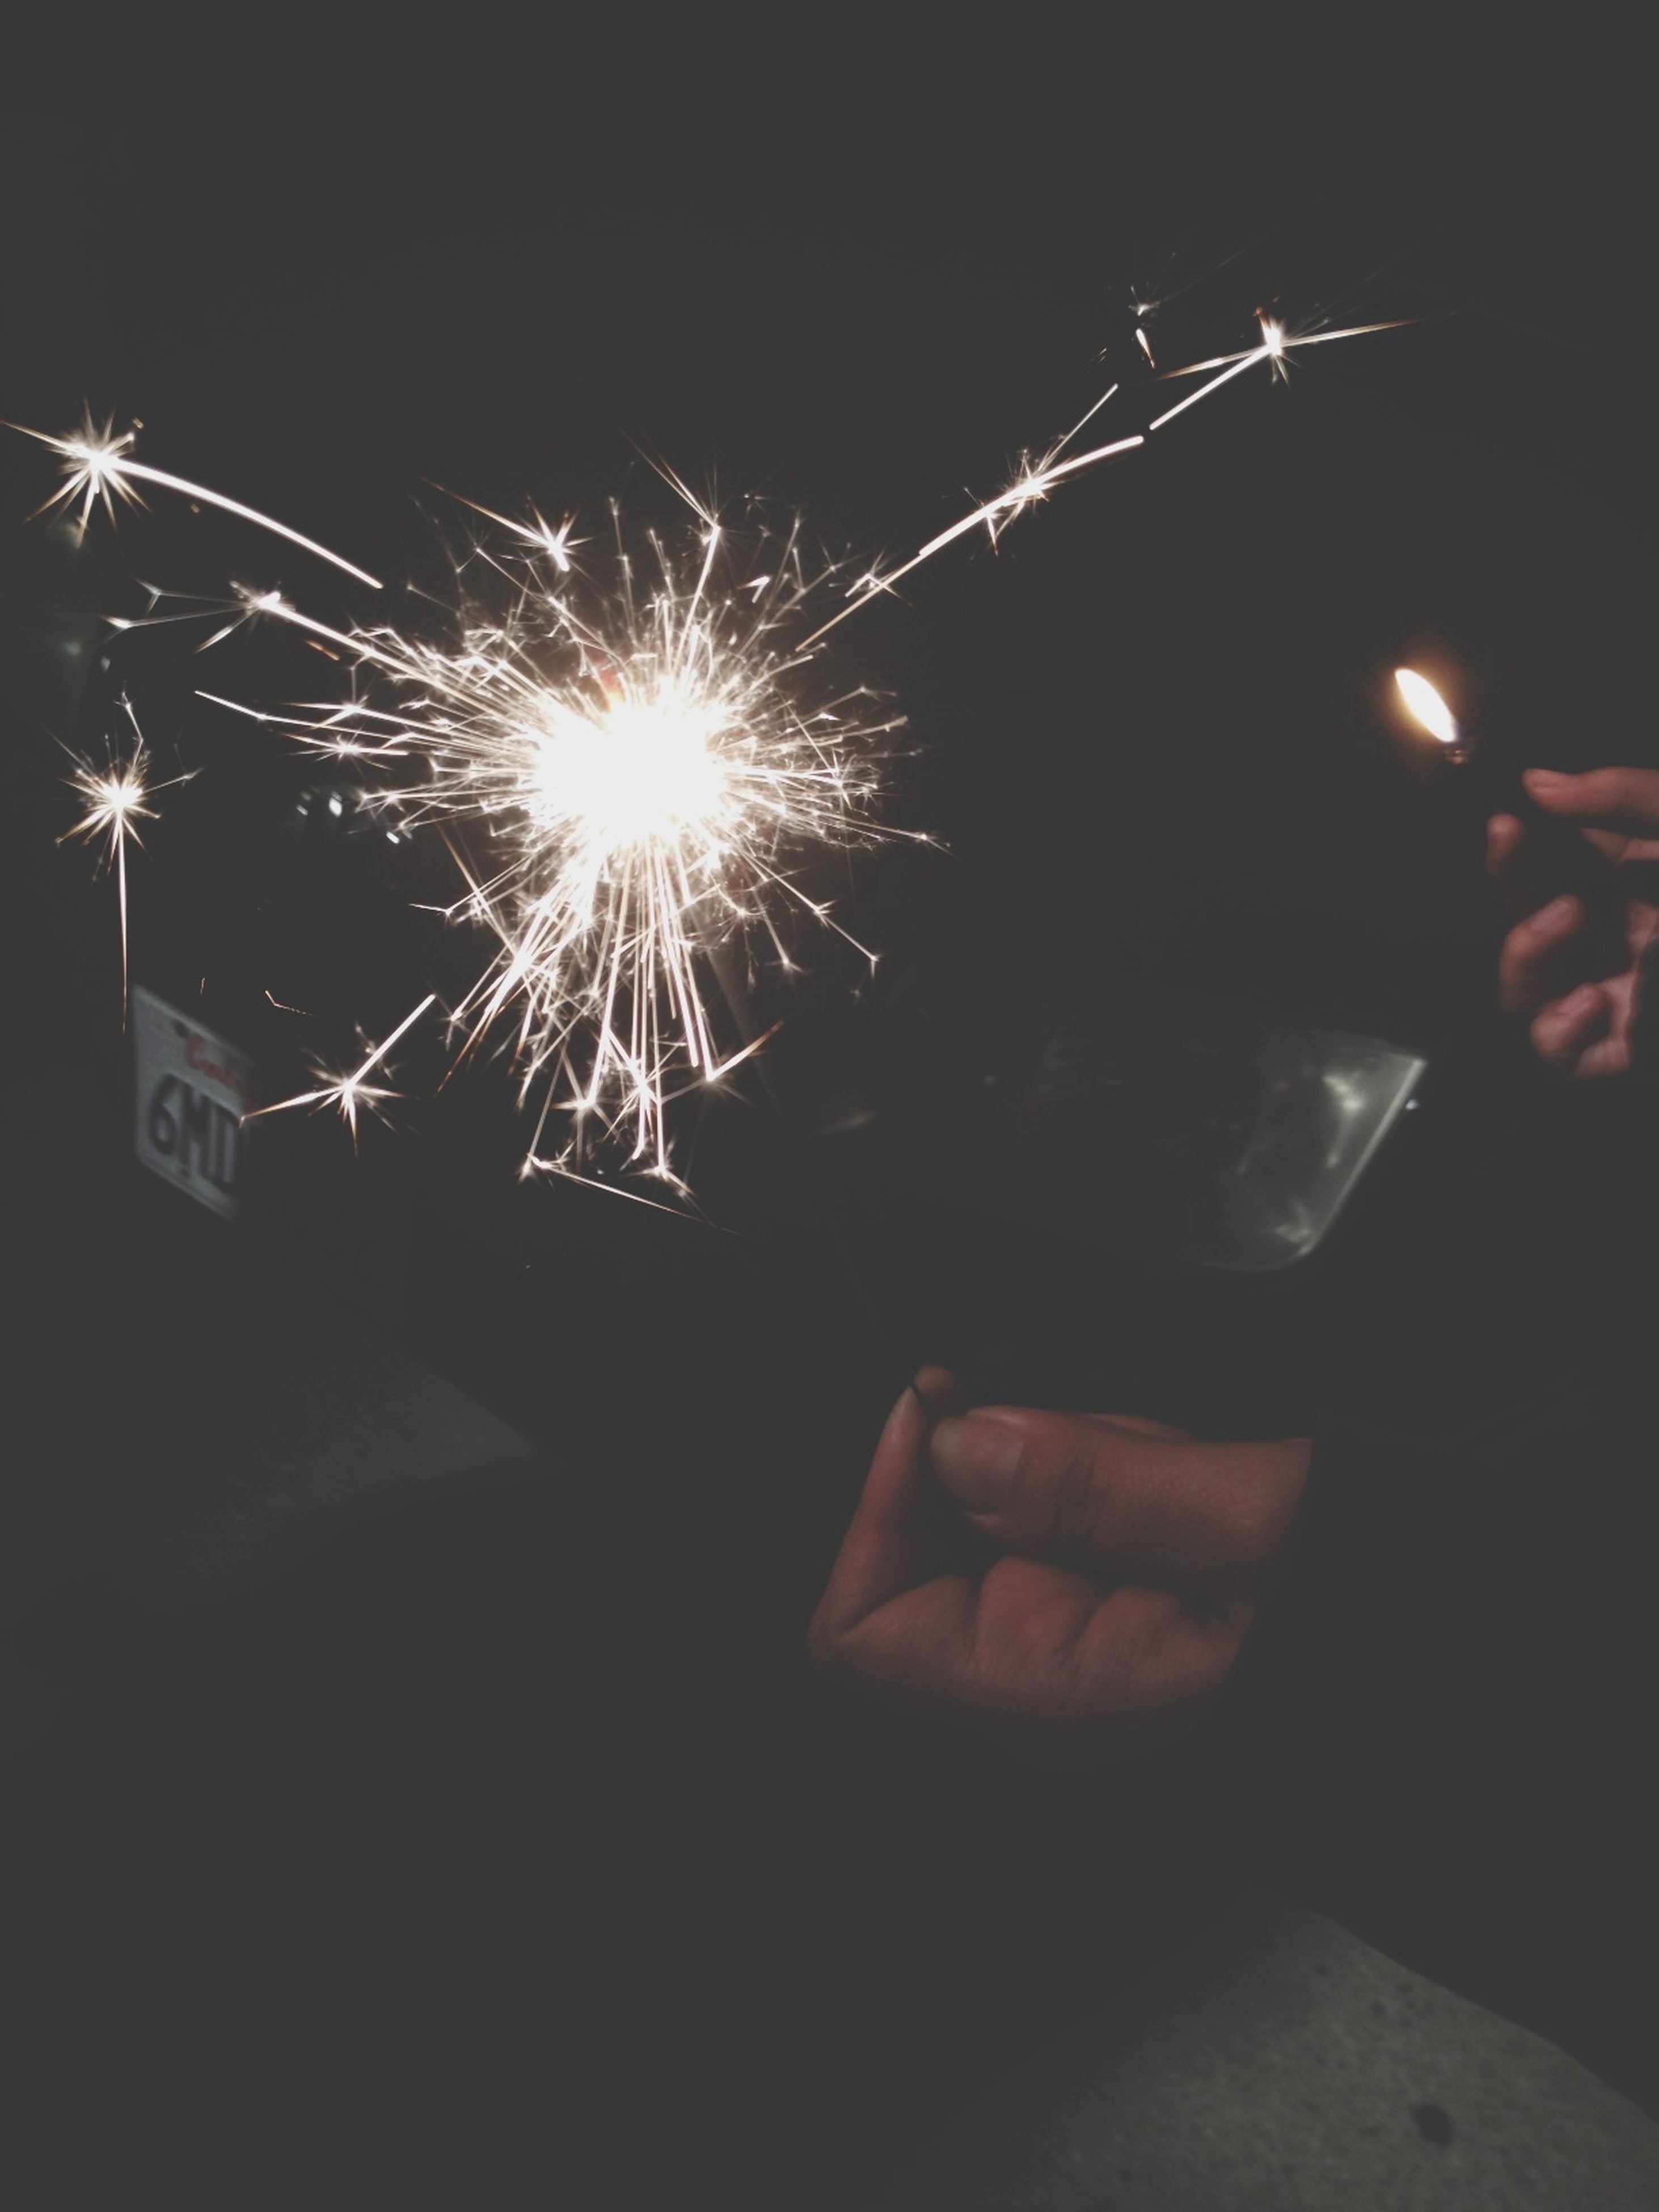 night, illuminated, arts culture and entertainment, fire - natural phenomenon, glowing, person, leisure activity, lifestyles, motion, burning, part of, sparks, celebration, men, holding, unrecognizable person, firework - man made object, flame